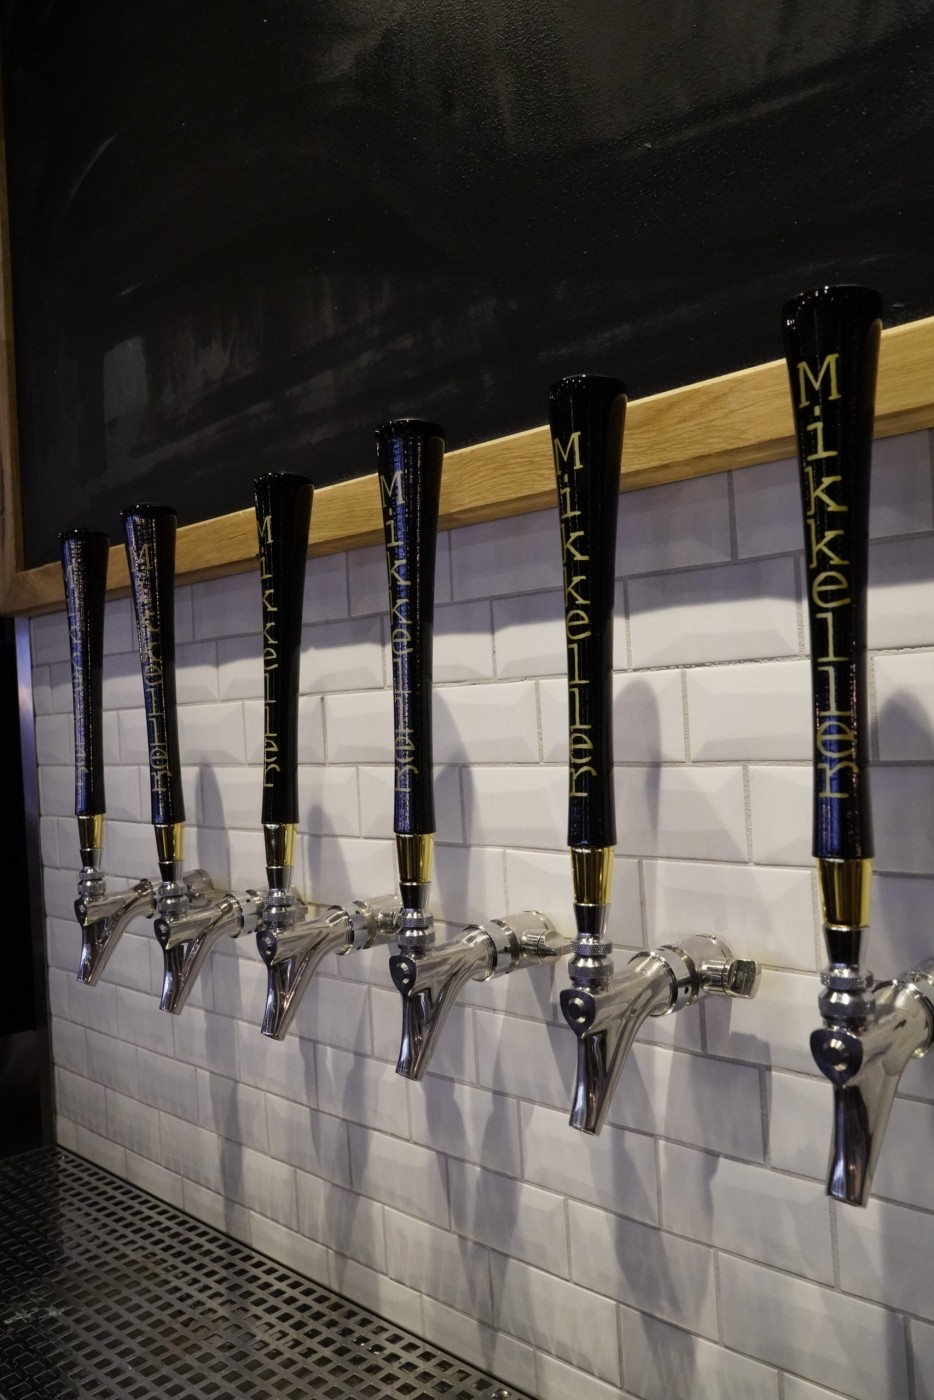 Mikkeller taps at the Brasserie Ulo. Photo by Brasserie Ulo – Hotel Arctic